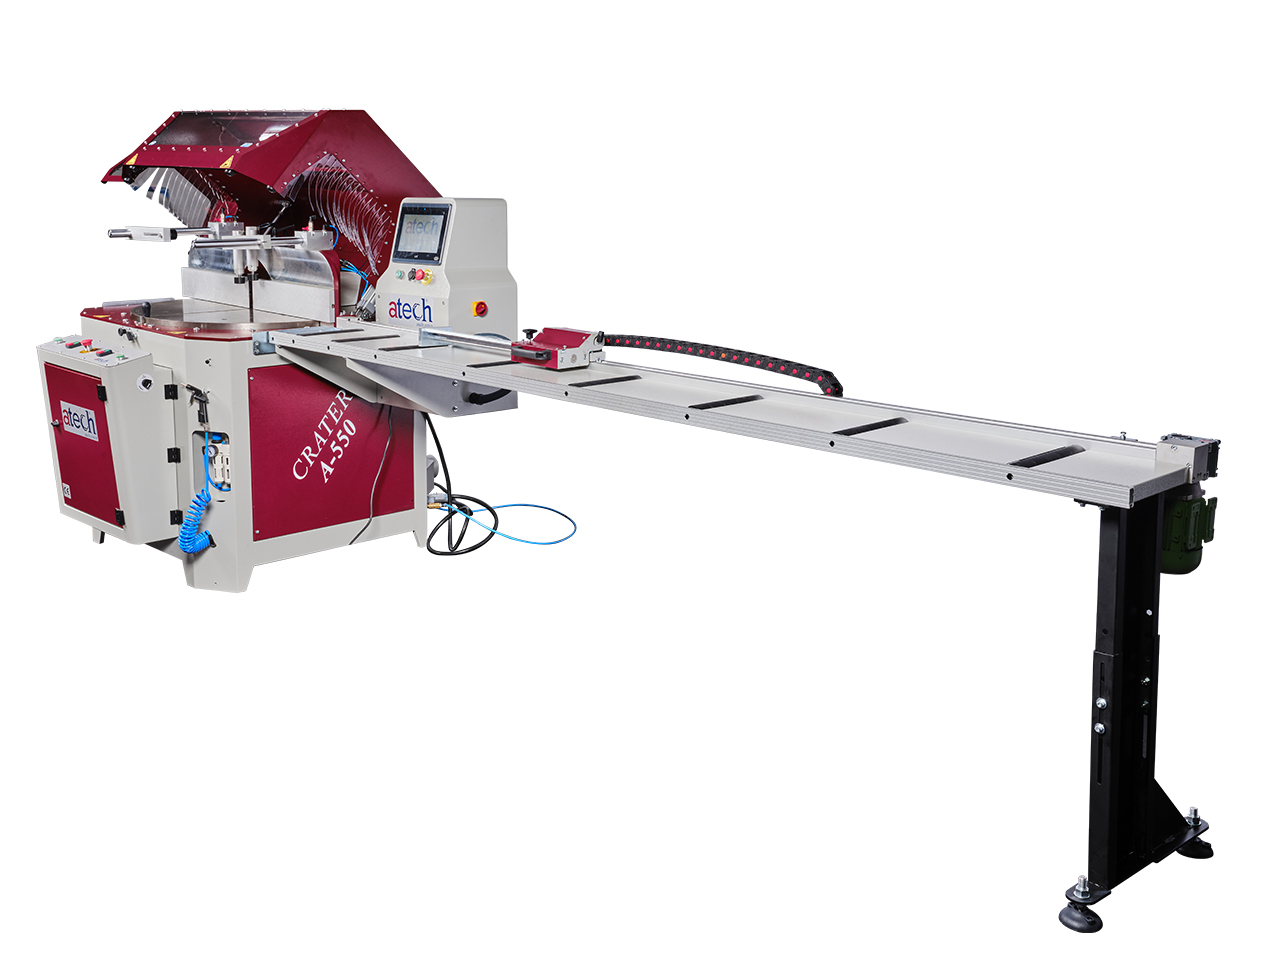 CRATER-06 A550 is a heavy duty 22 (550 mm) automatic aluminium profile upcut miter saw (10)